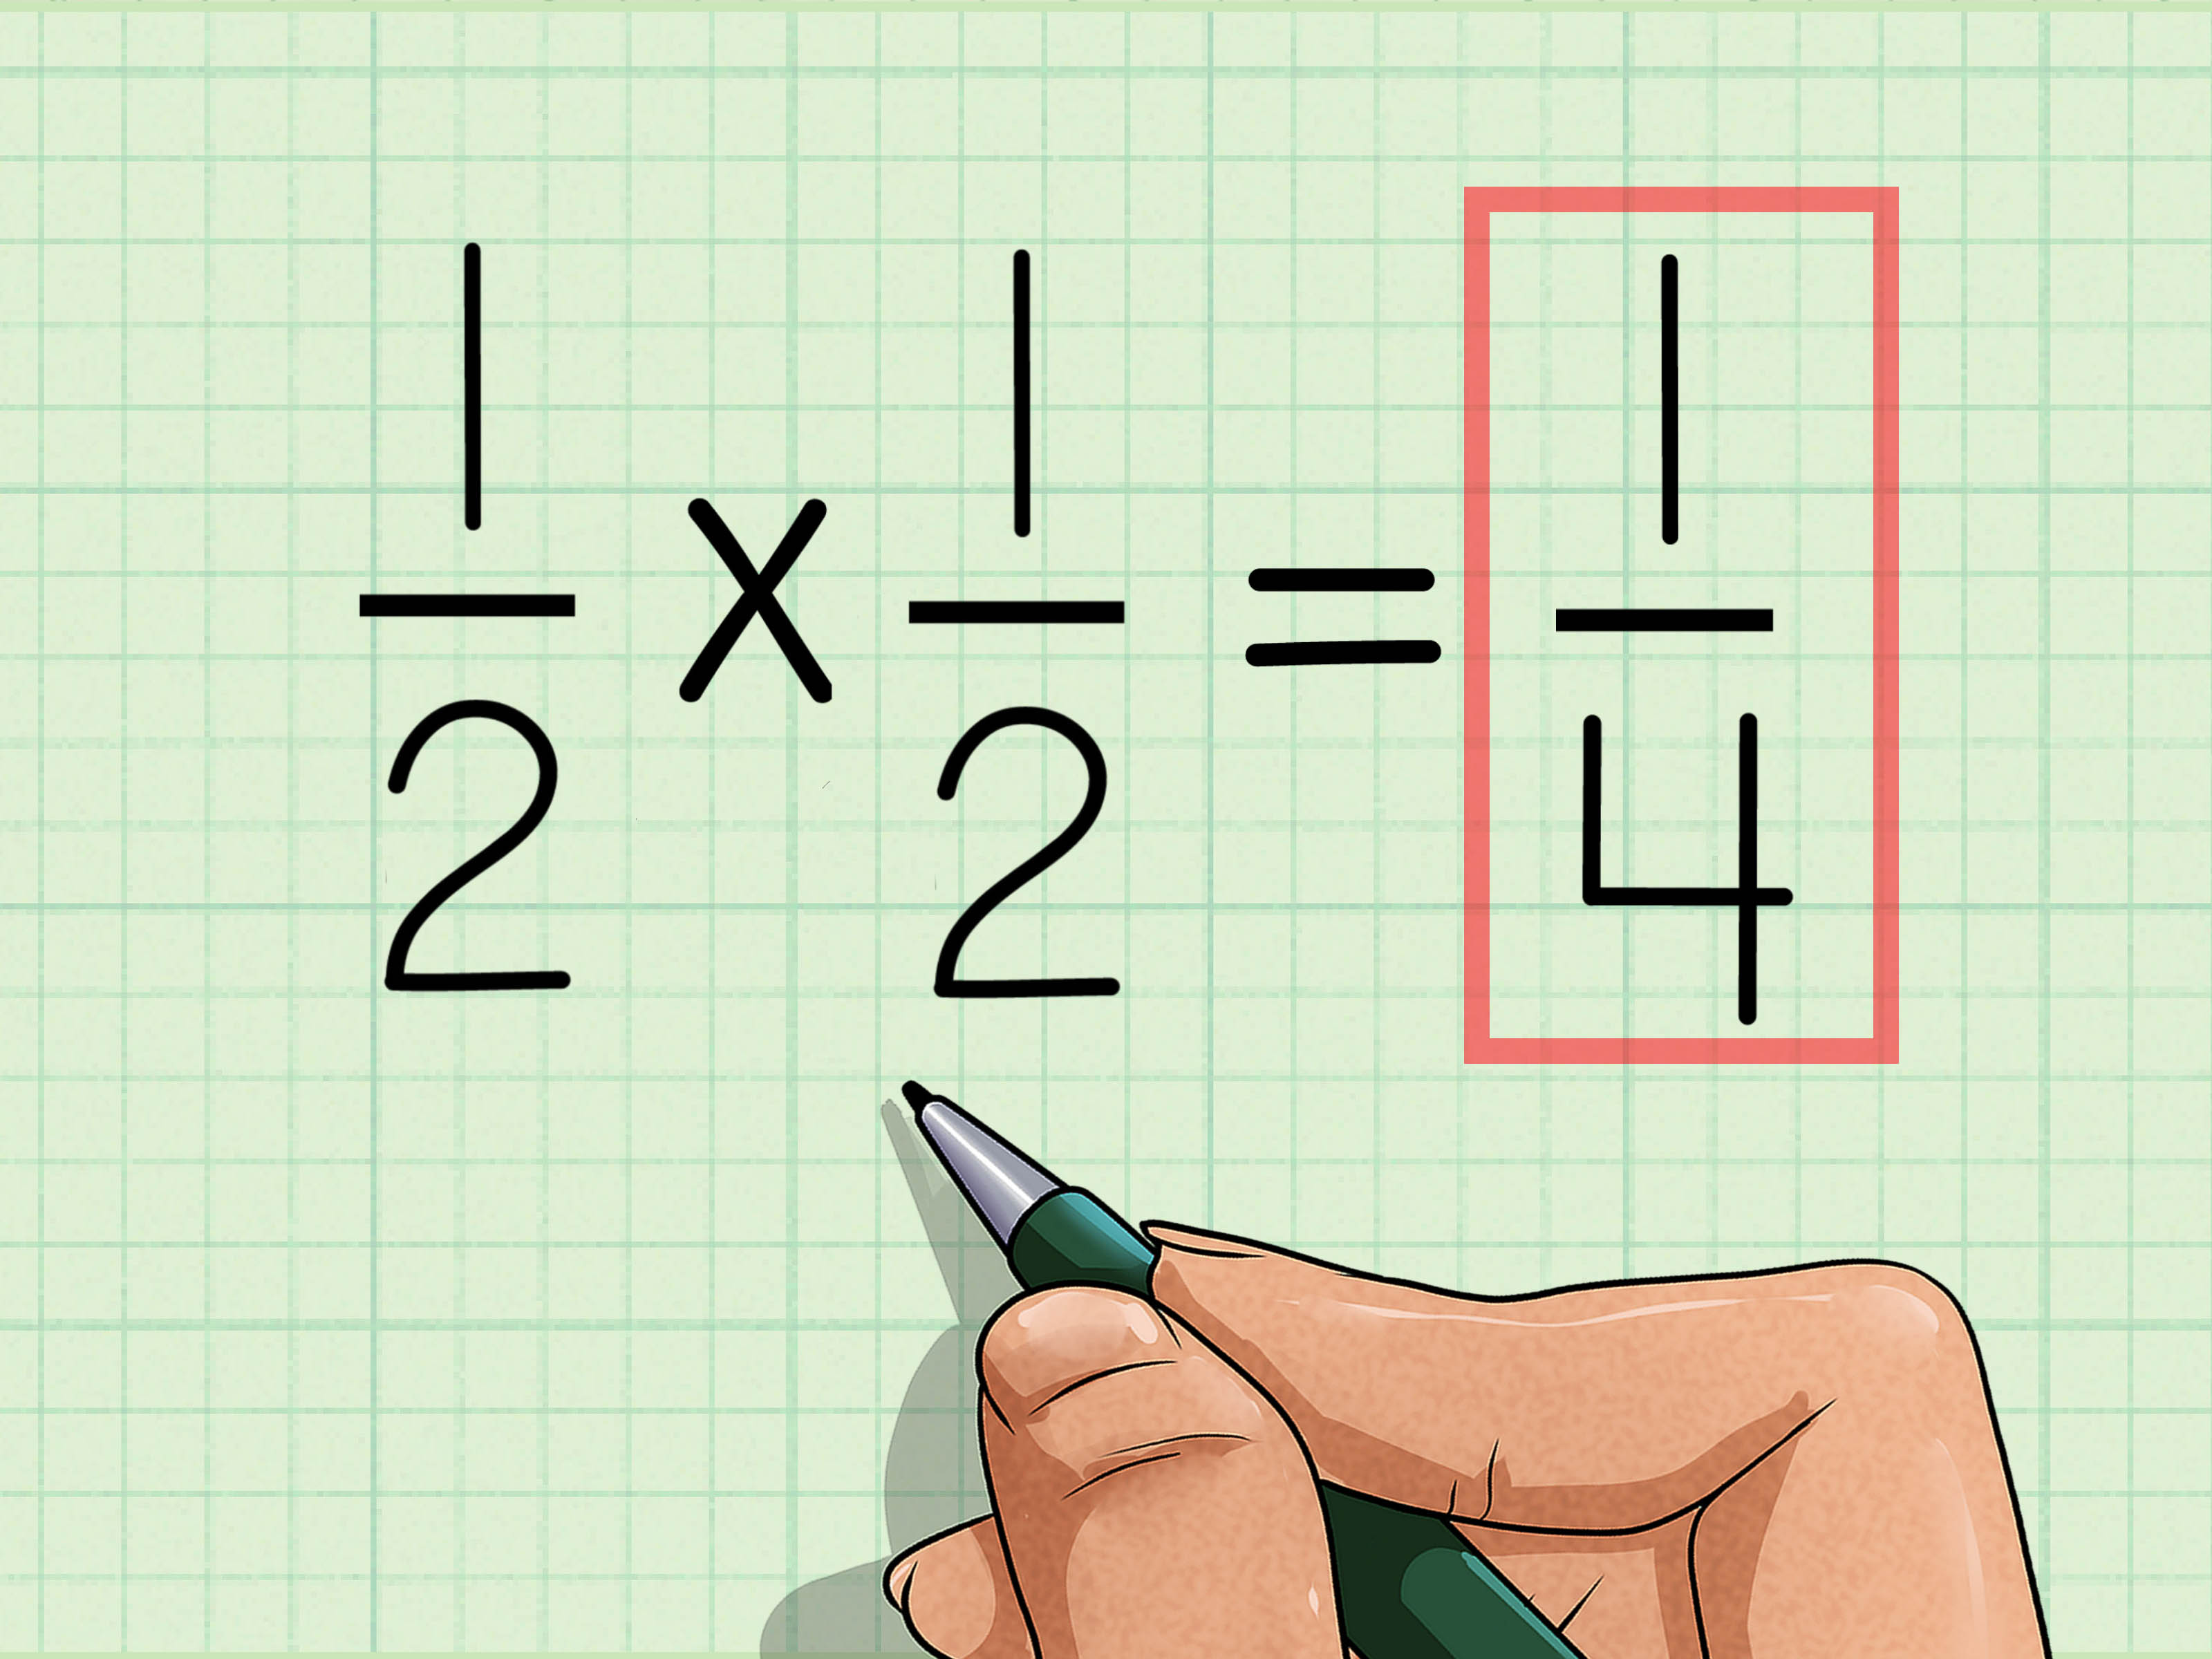 Multiply Fractions Practice 12 2 Answers